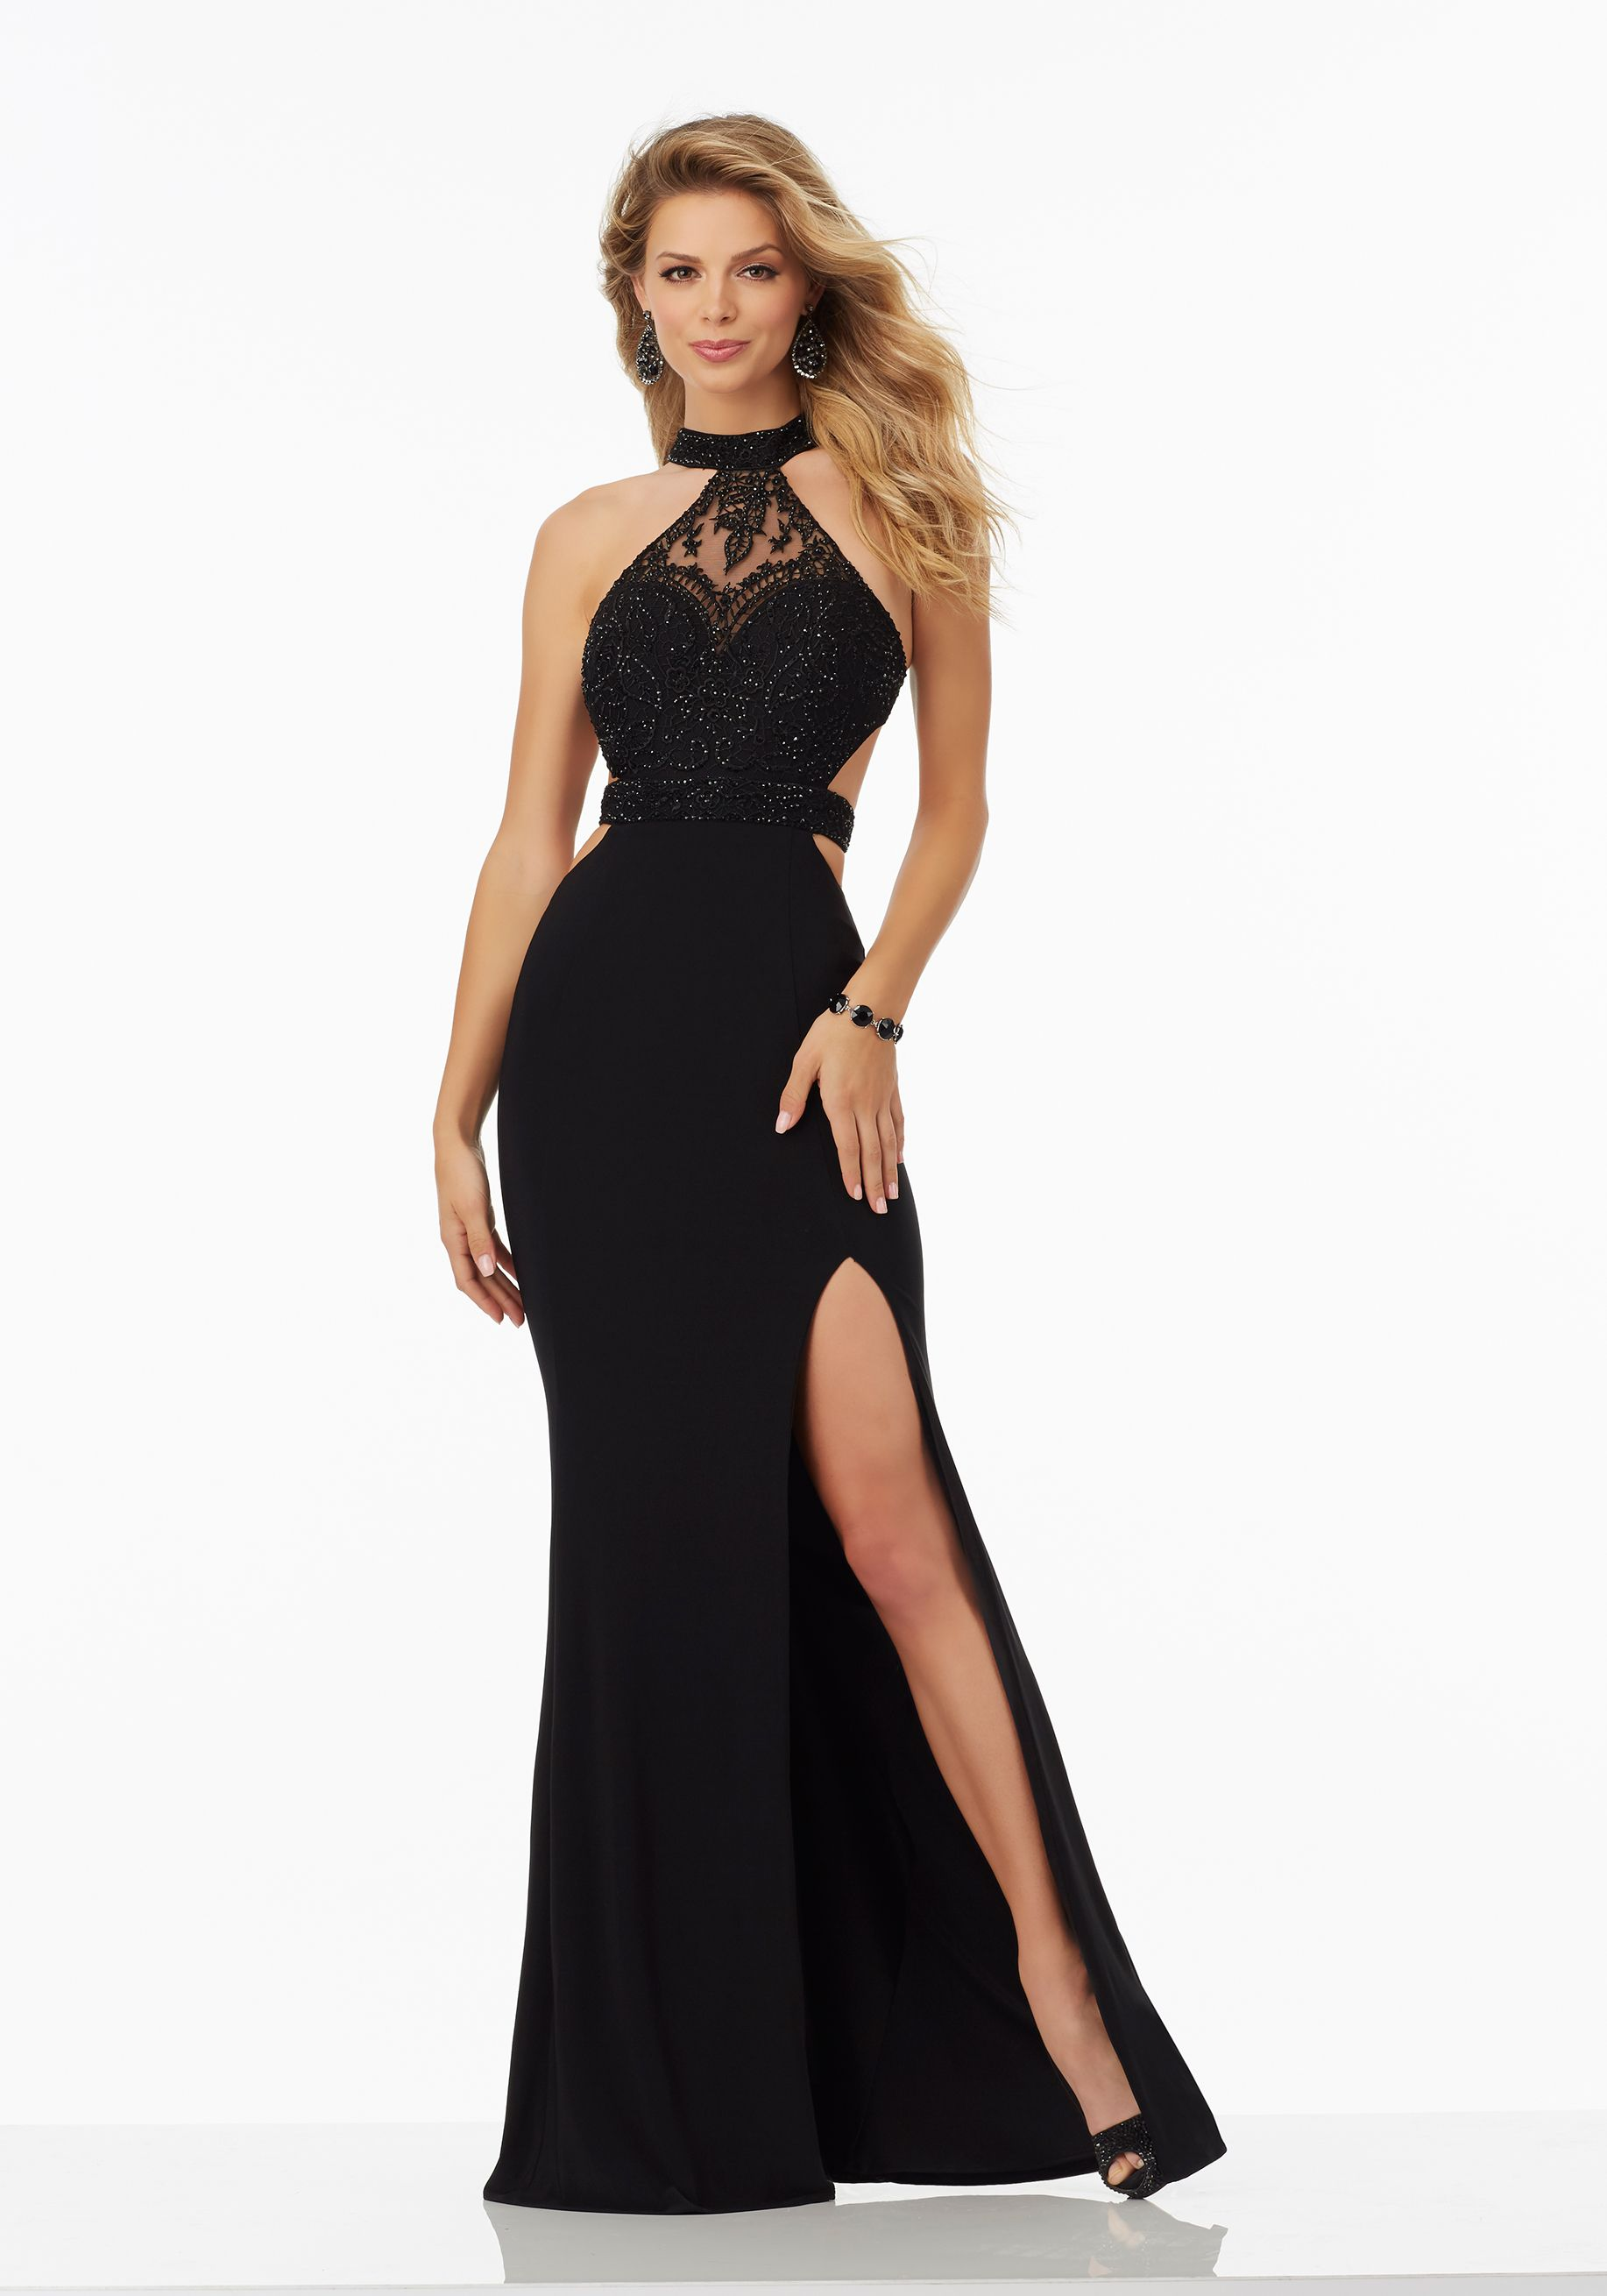 Fitted jersey prom dress with cutout sides and beaded bodice